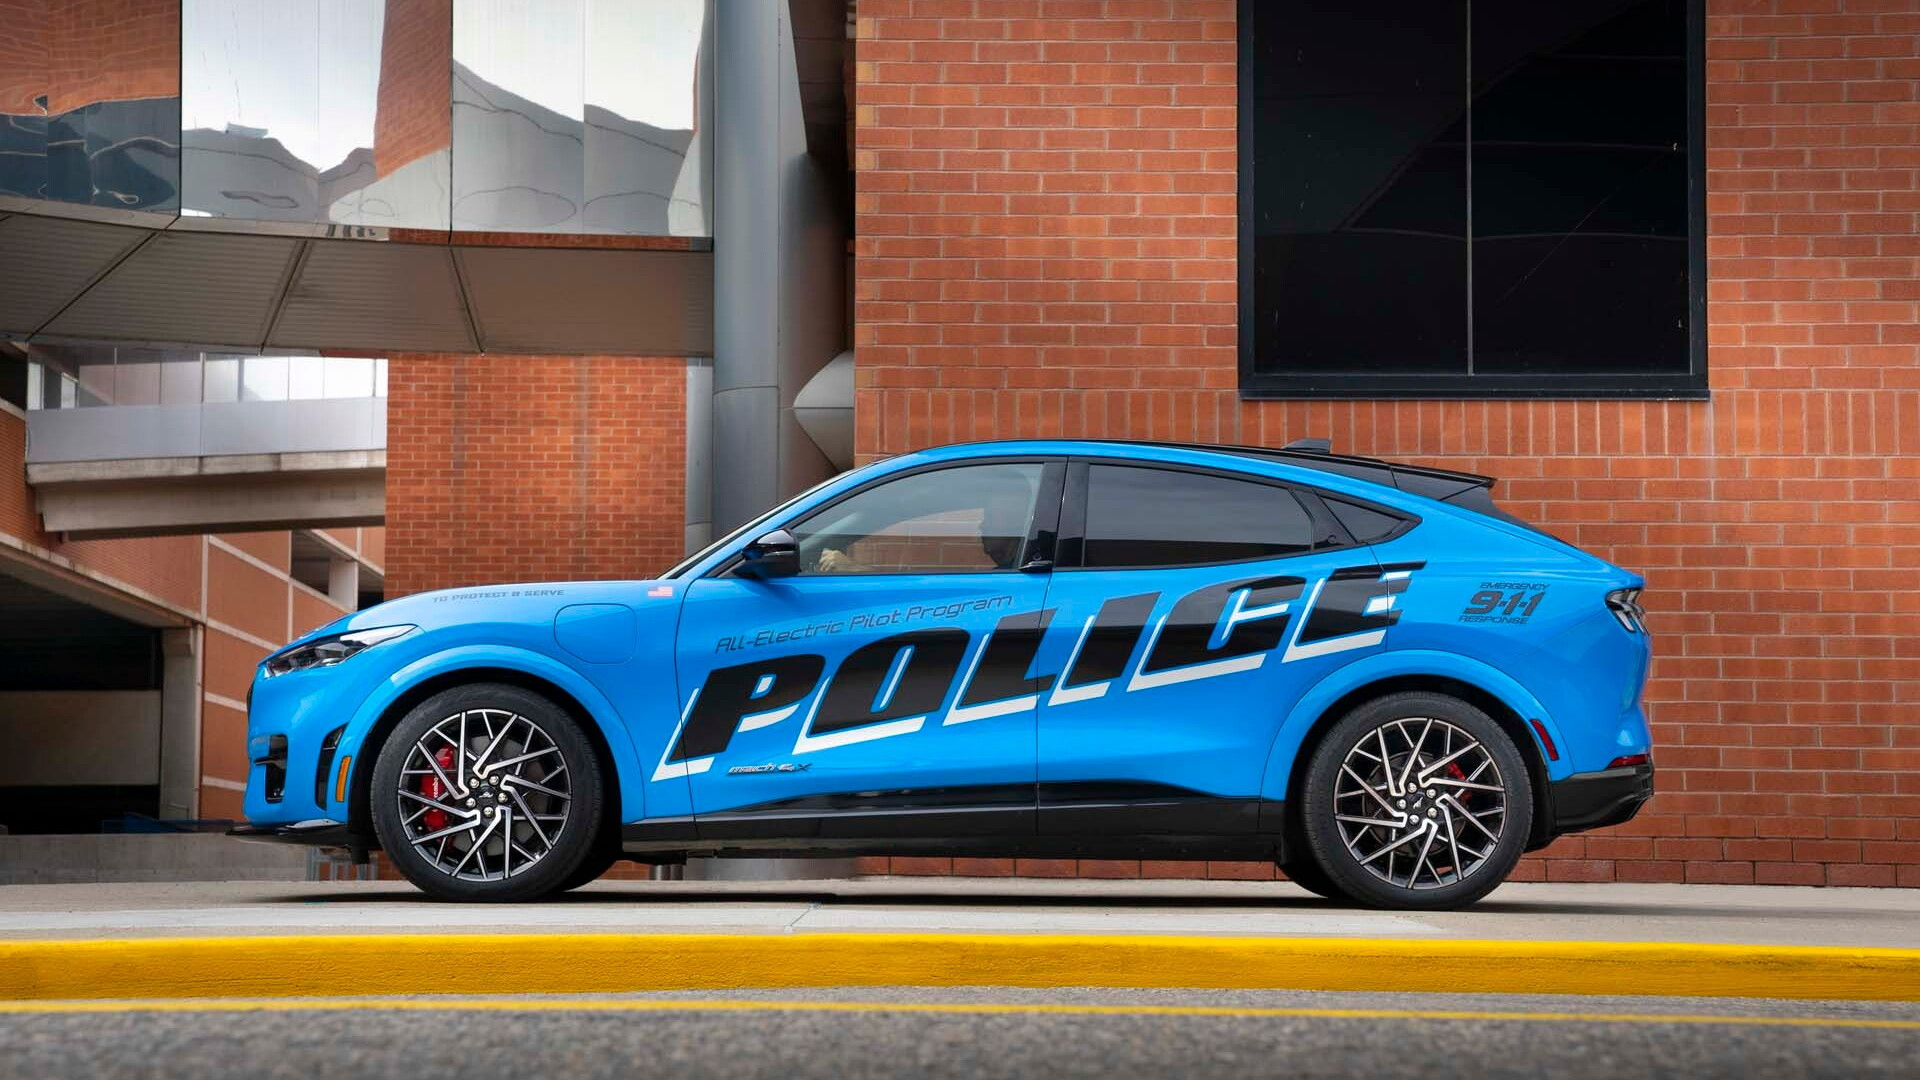 2021 Ford Mustang Mach-E police pilot vehicle